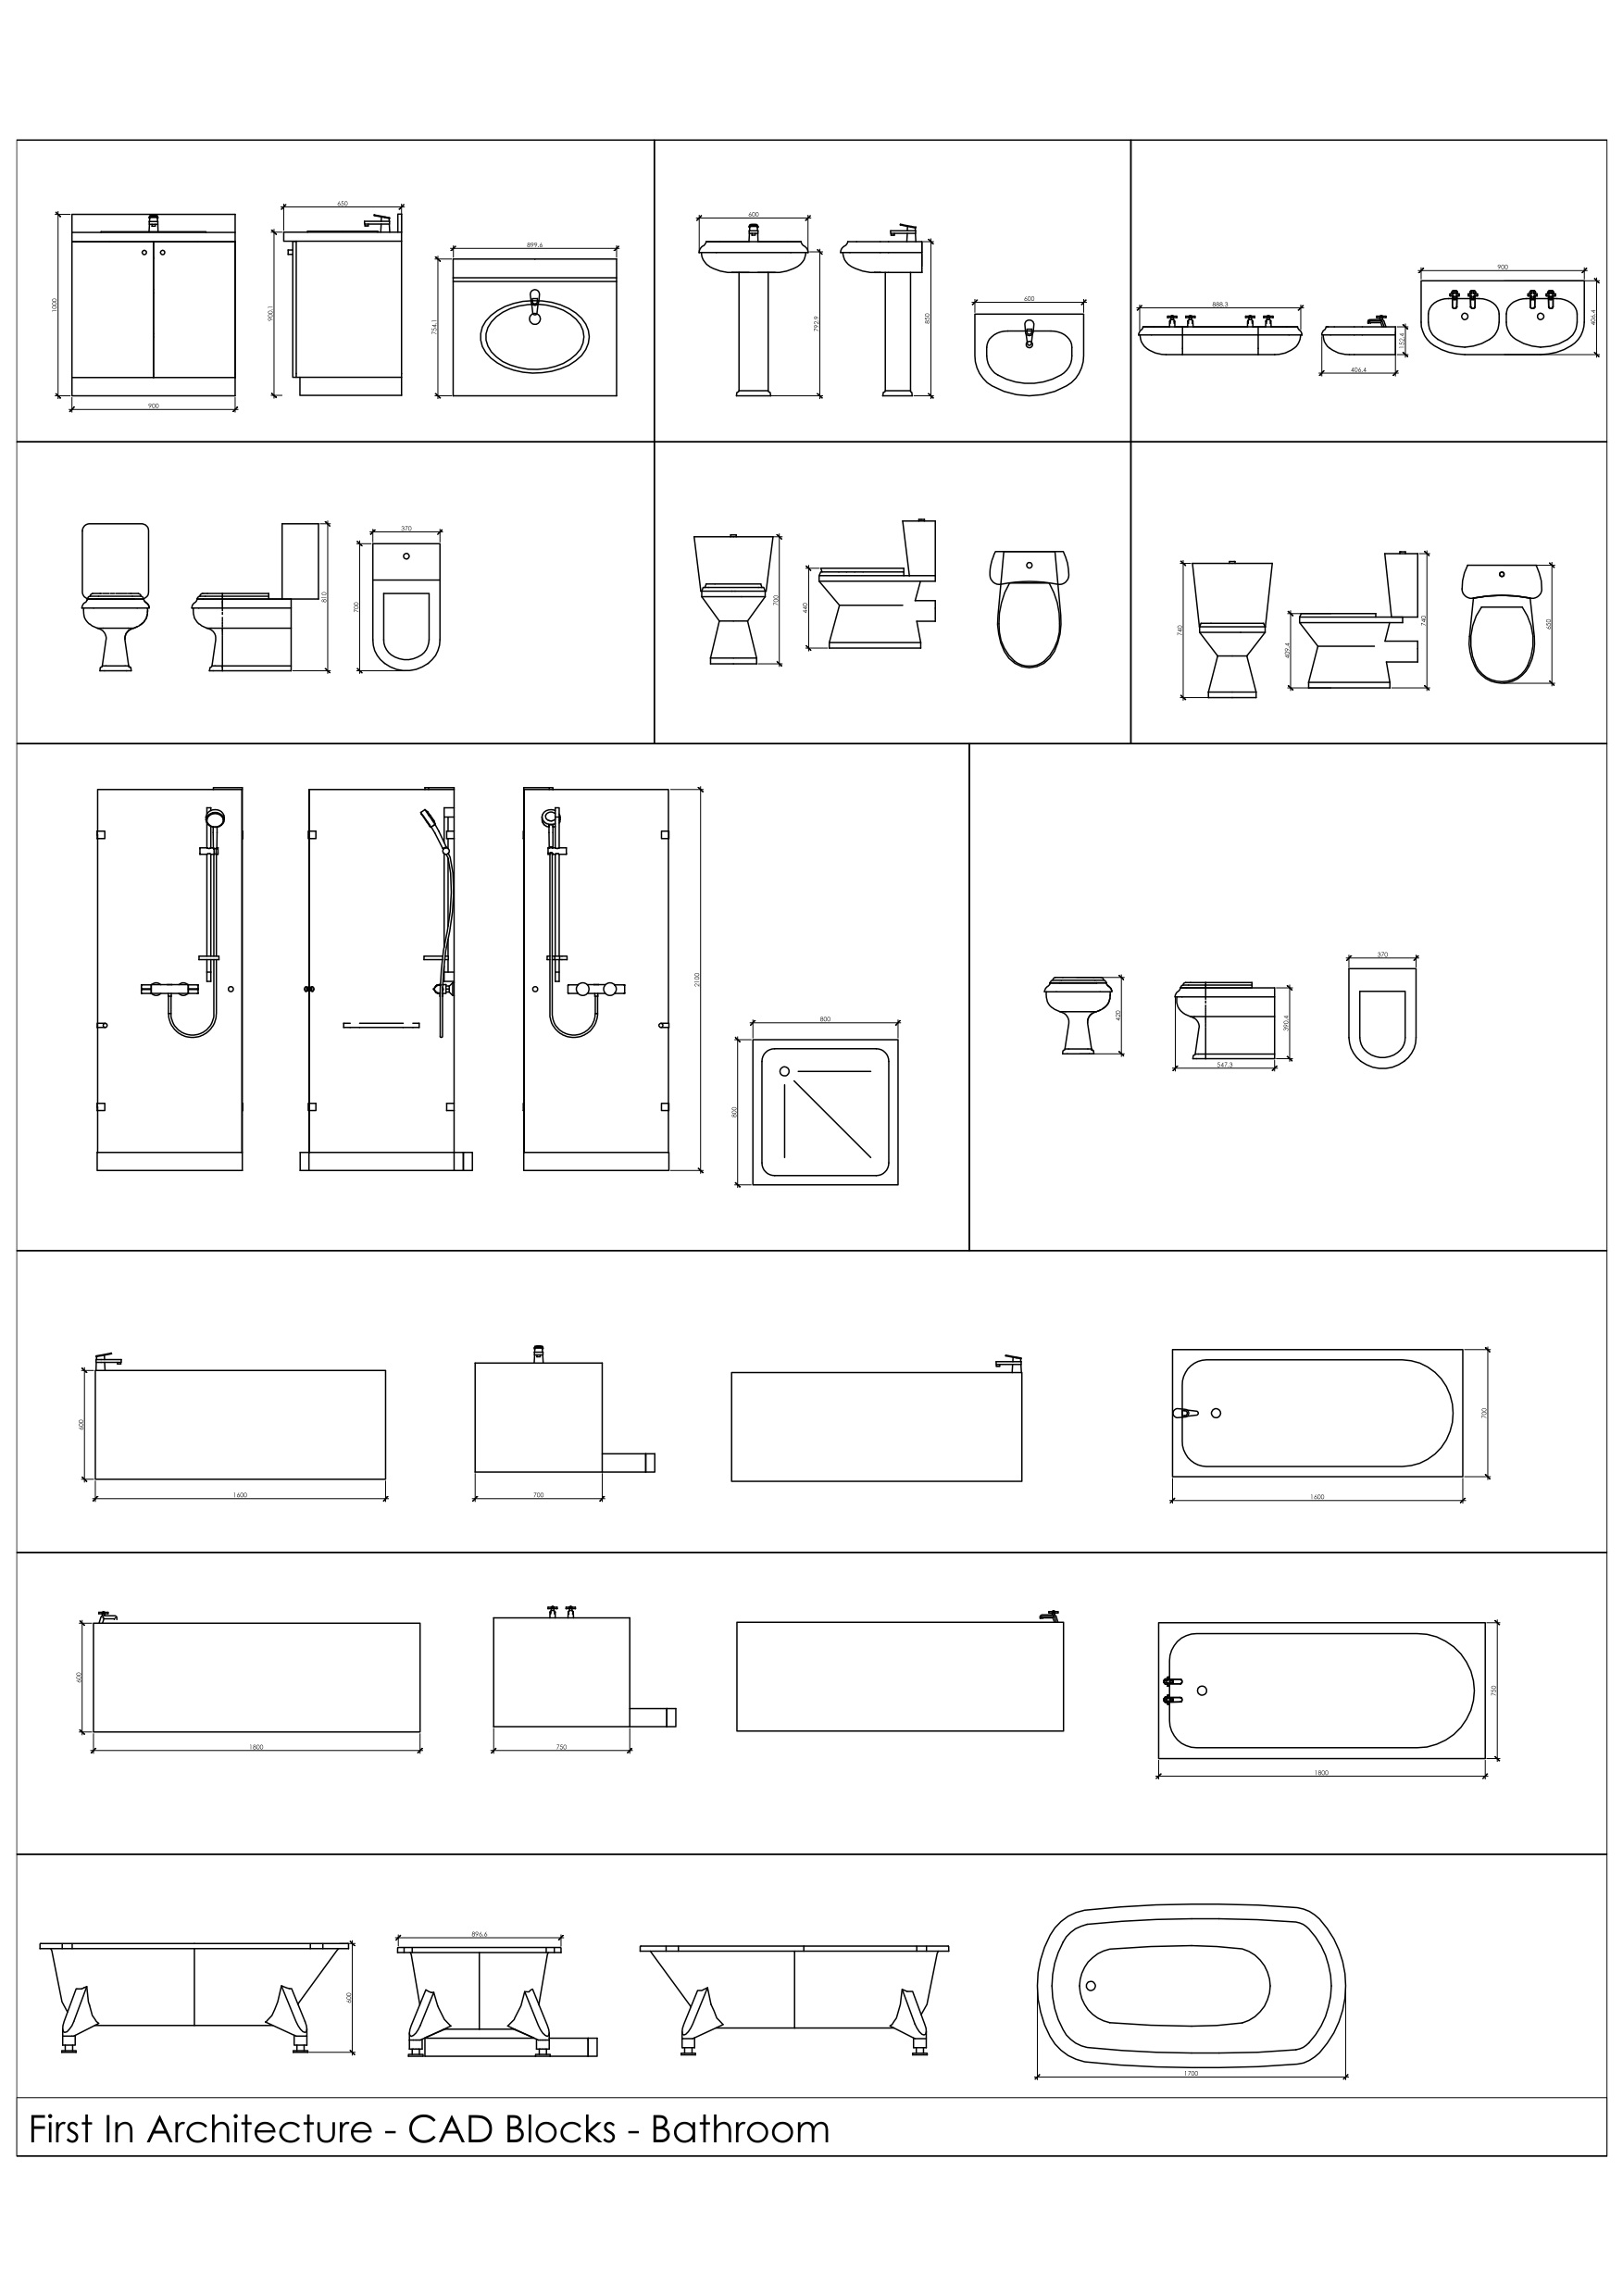 Bathroom section drawing - Bathroom Section Drawing 30